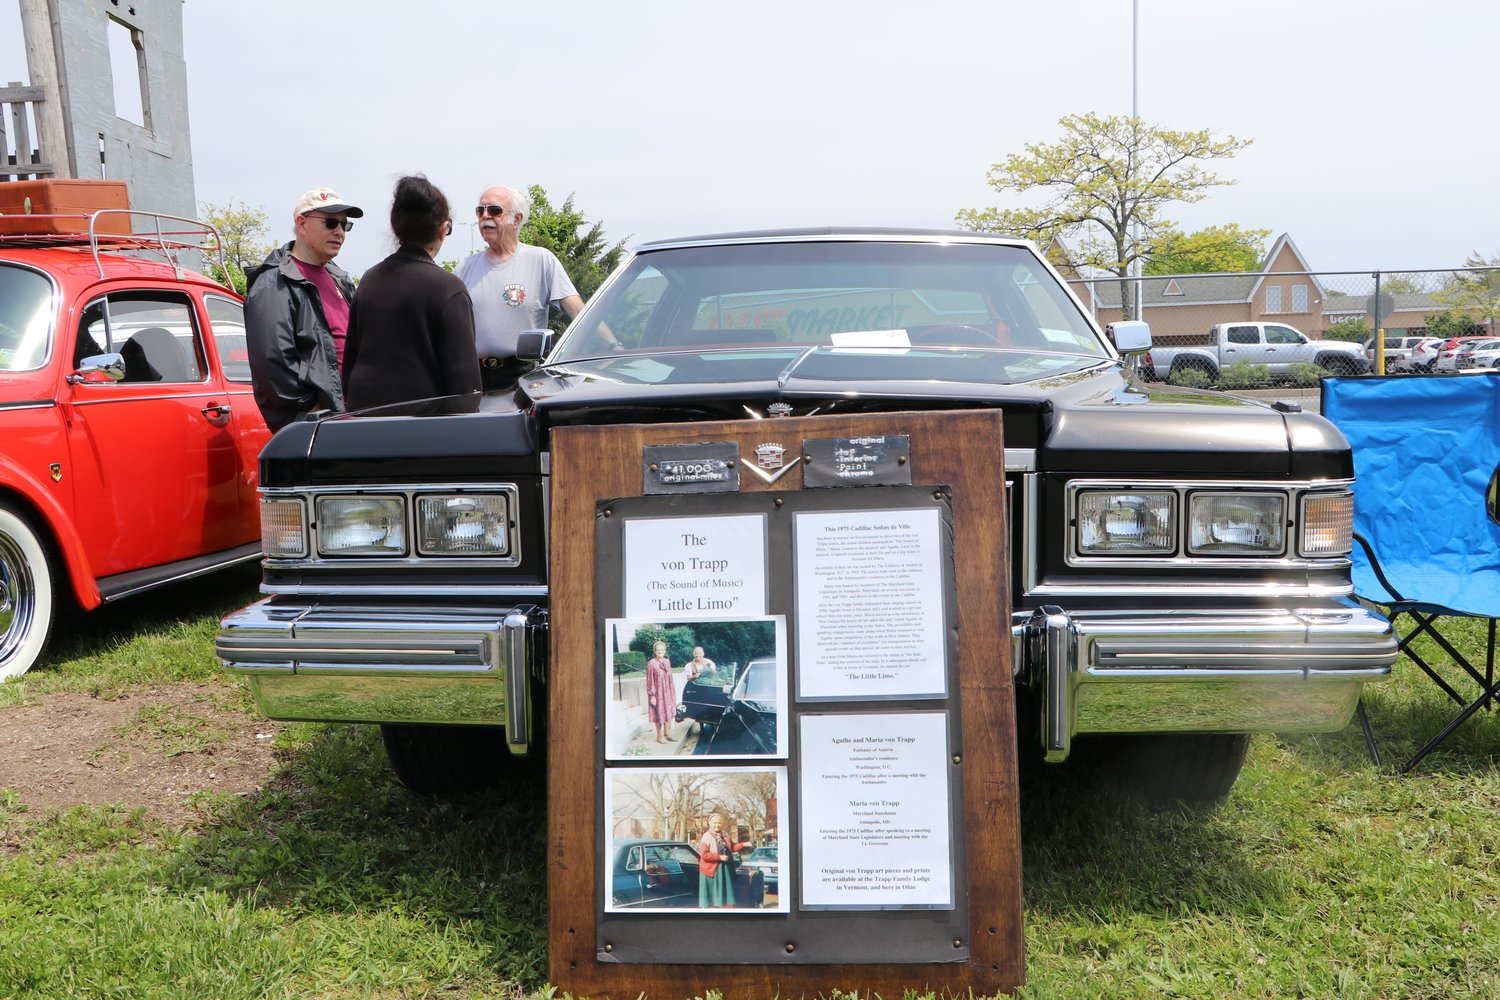 This 1975 Cadillac Sedan Deville, owned by Freeporter Charles Rowe, was used to transport two Von Trapp sisters.